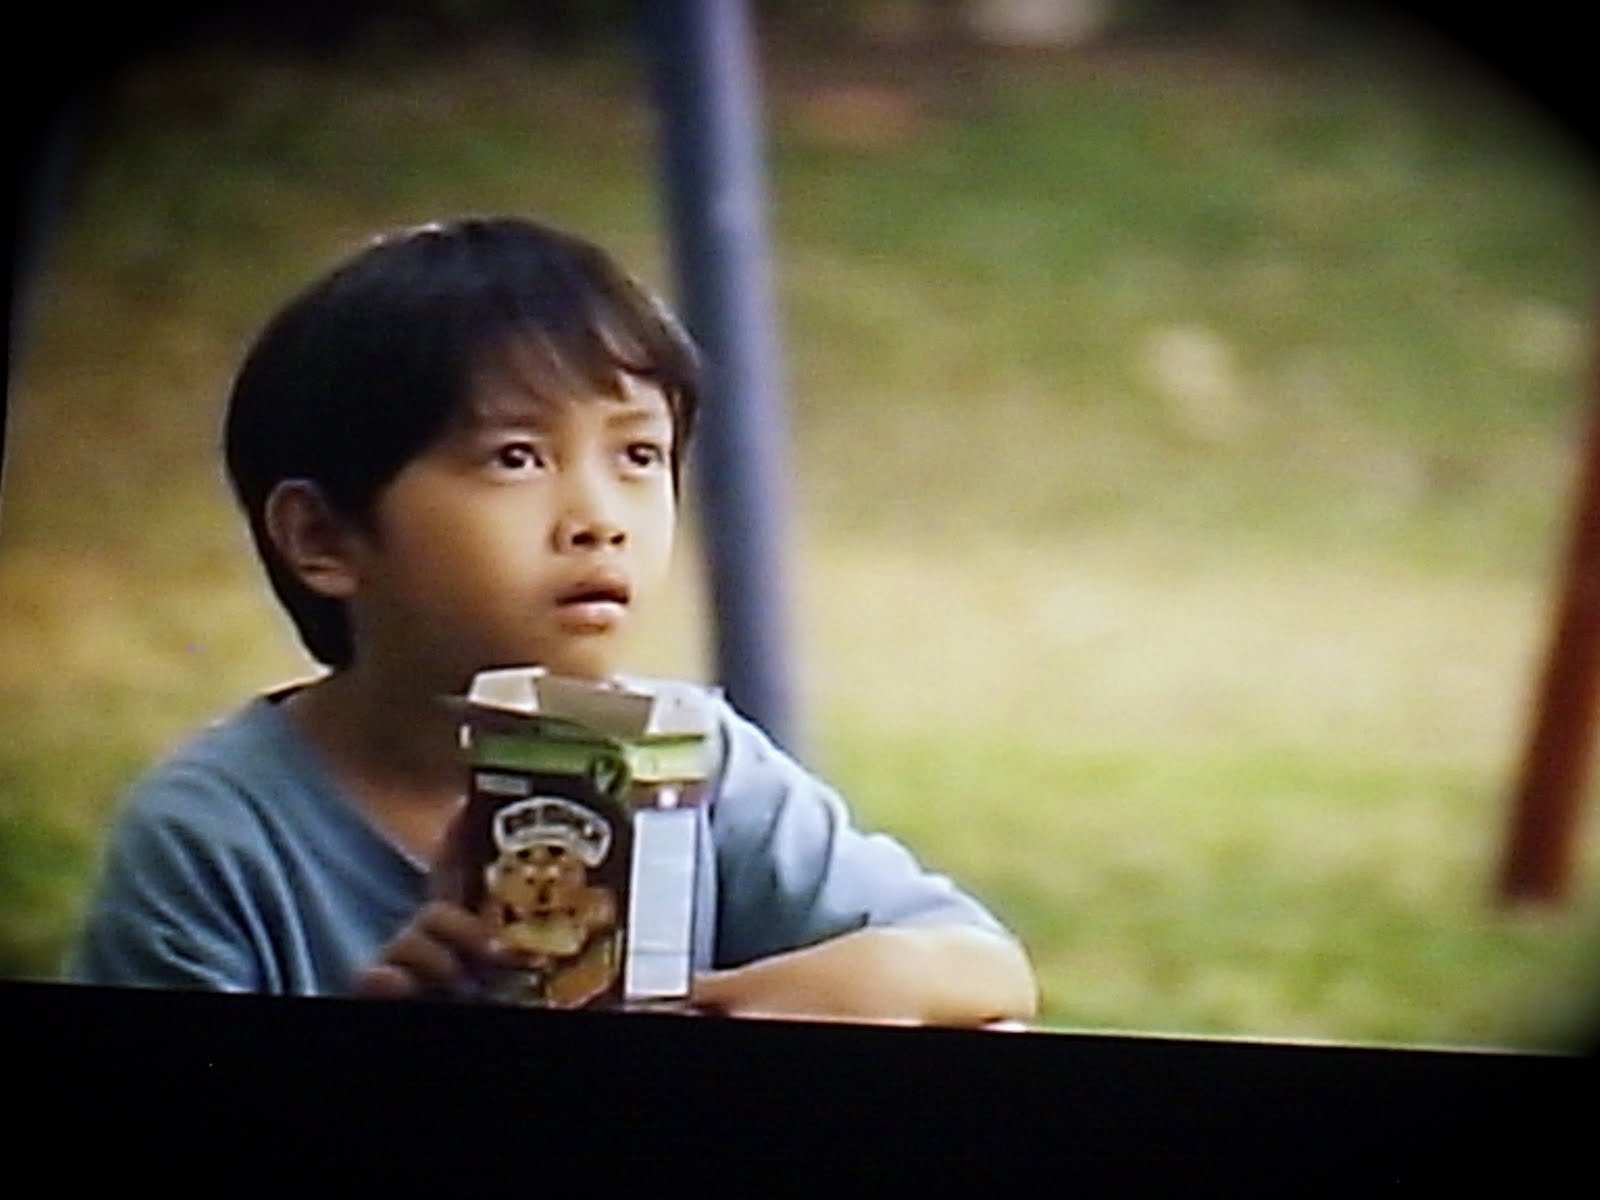 nestle kasambuhay habambuhay films Nestle kasambuhay habambuhay short film tingala sa baba star eubert marc delacruz dancing with the music club can't handle me popular movie trailers from 2011 these some of the most viewed trailers for movies released in 2011.